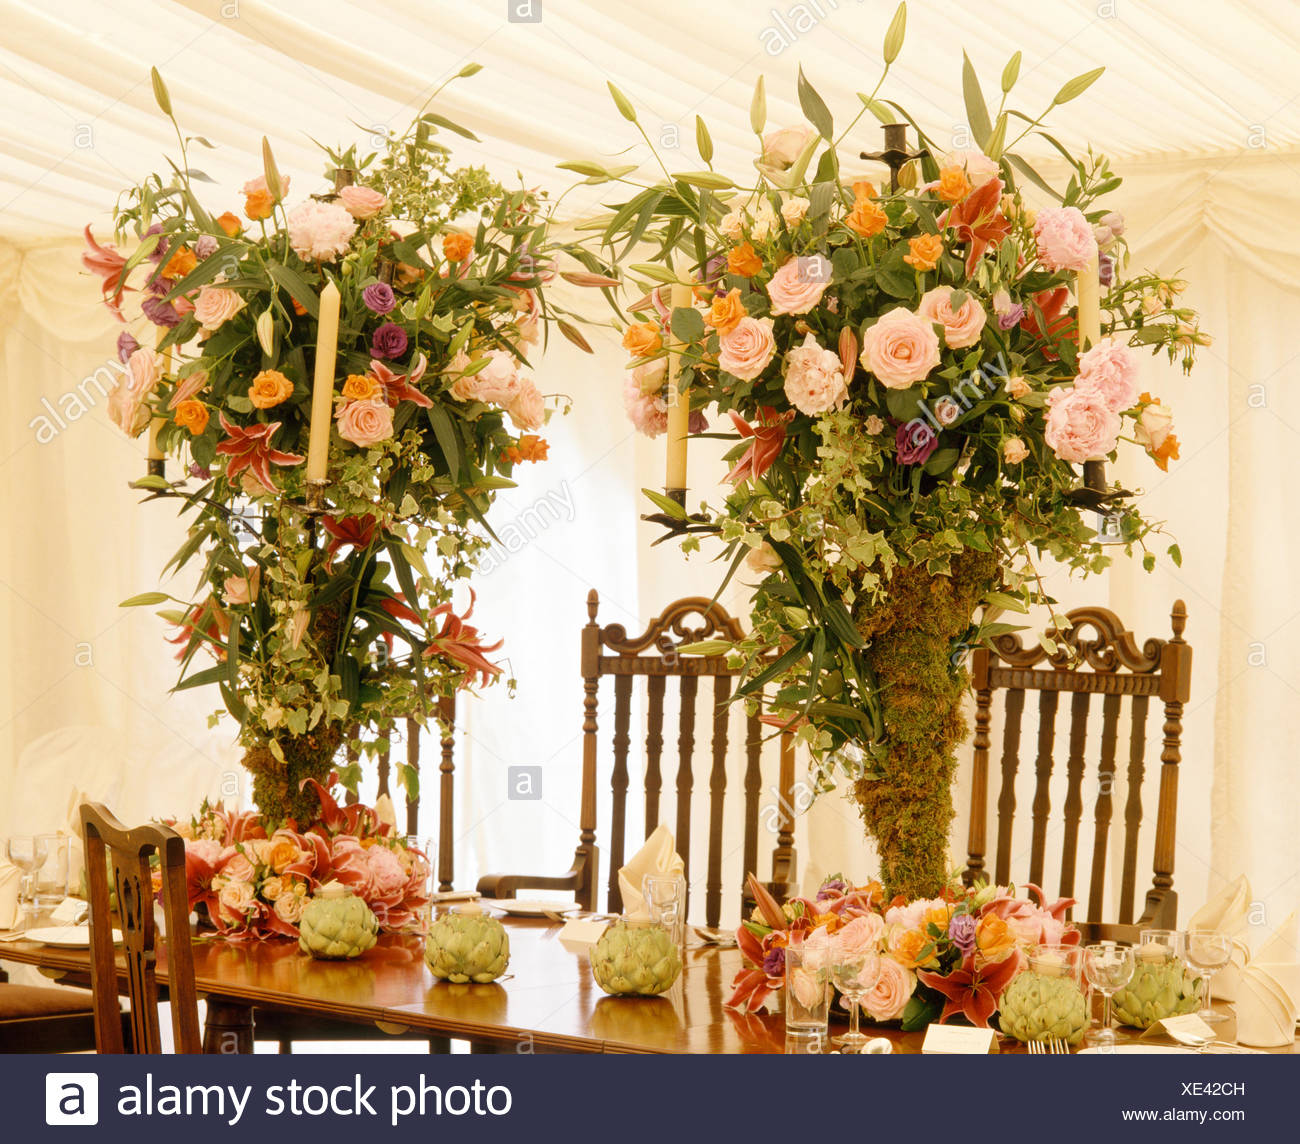 Pink Roses In Sumptuous Floral Arrangements On Table In Marquee